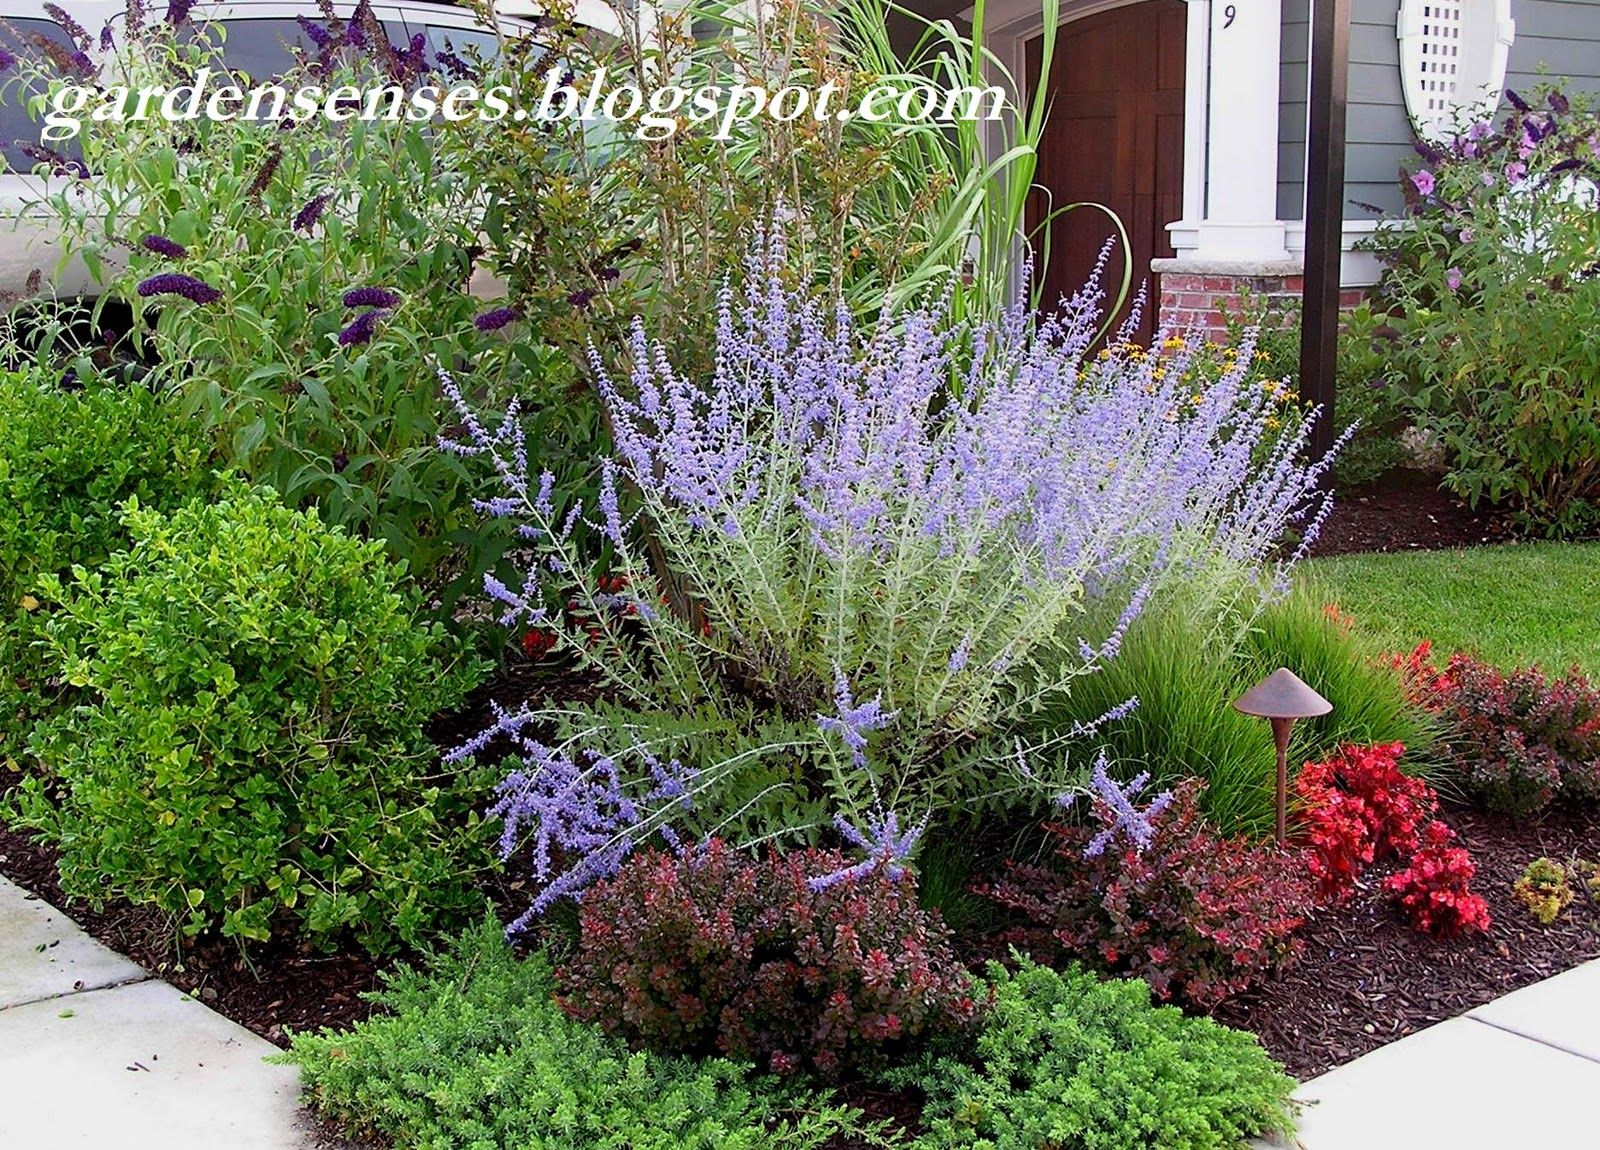 Dwarf barberry bushes easy care garden with russian sage for Easy to care for landscaping ideas